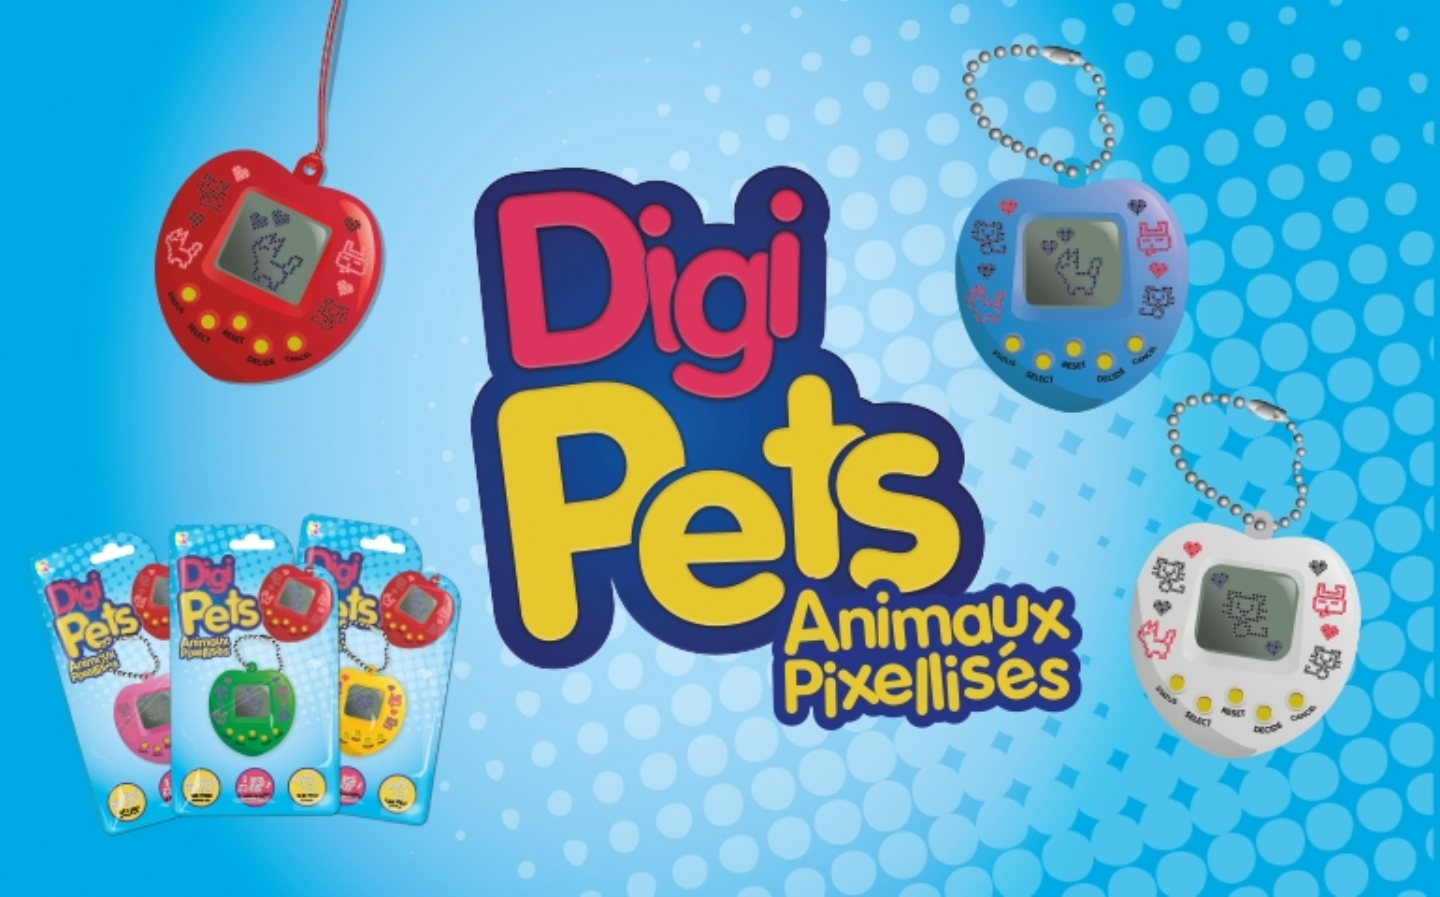 Digi Pets - Available Now to Pre-Order